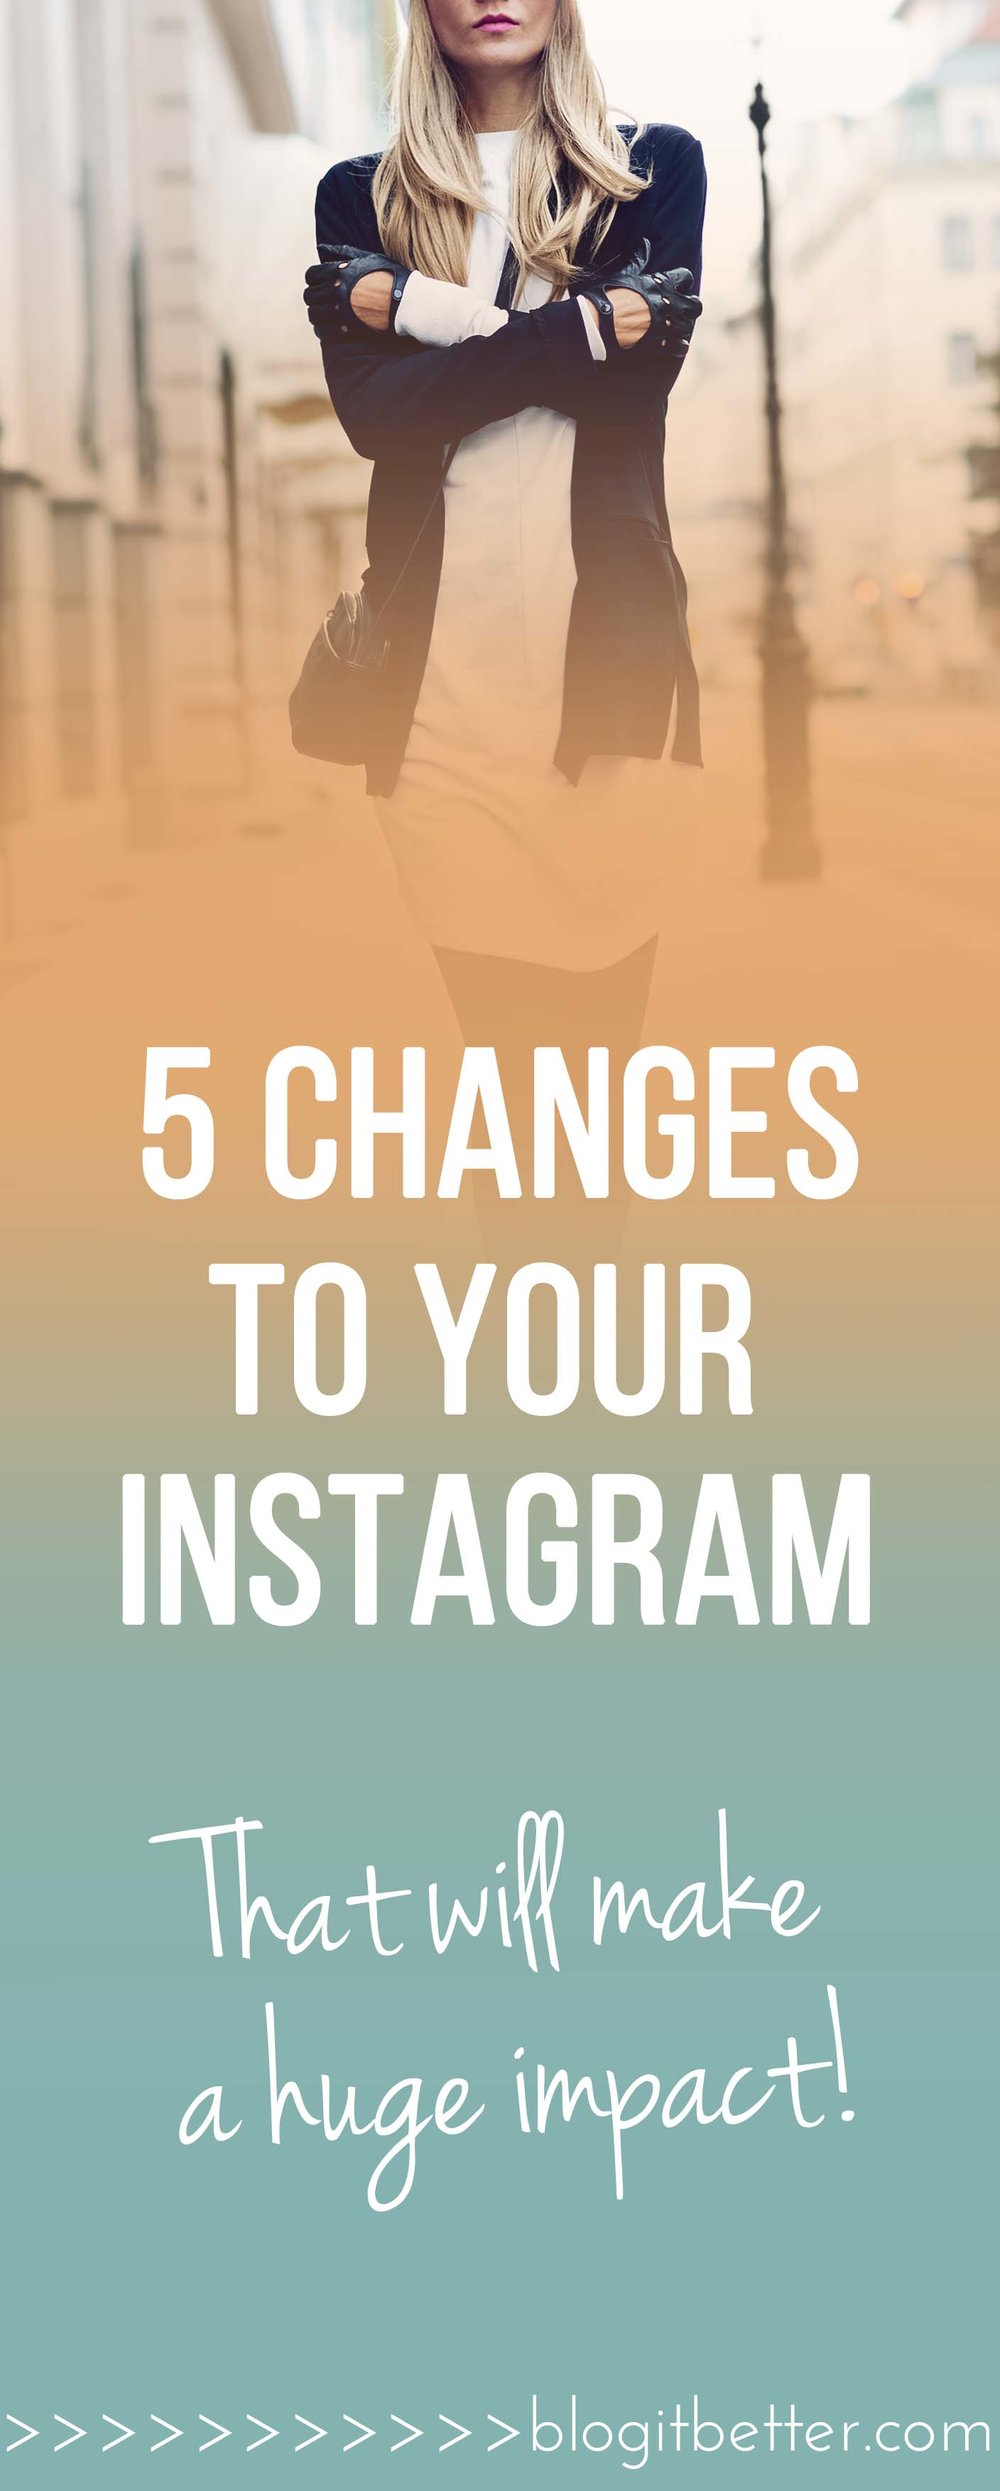 5 changes to your Instagram account that will increase your following!